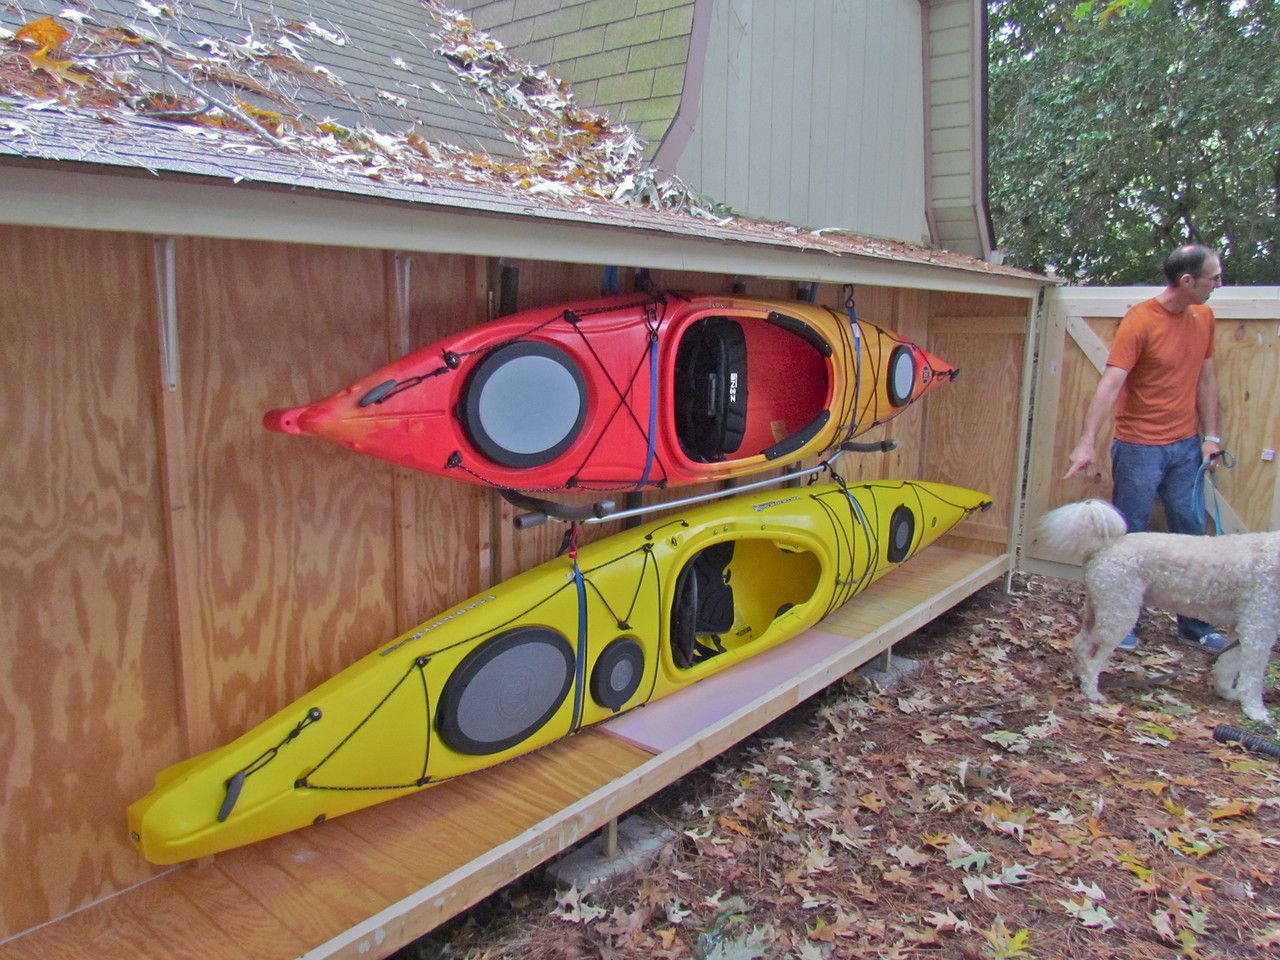 Kayak Storage | Kayak storage rack, Kayak storage, Outdoor gear storage